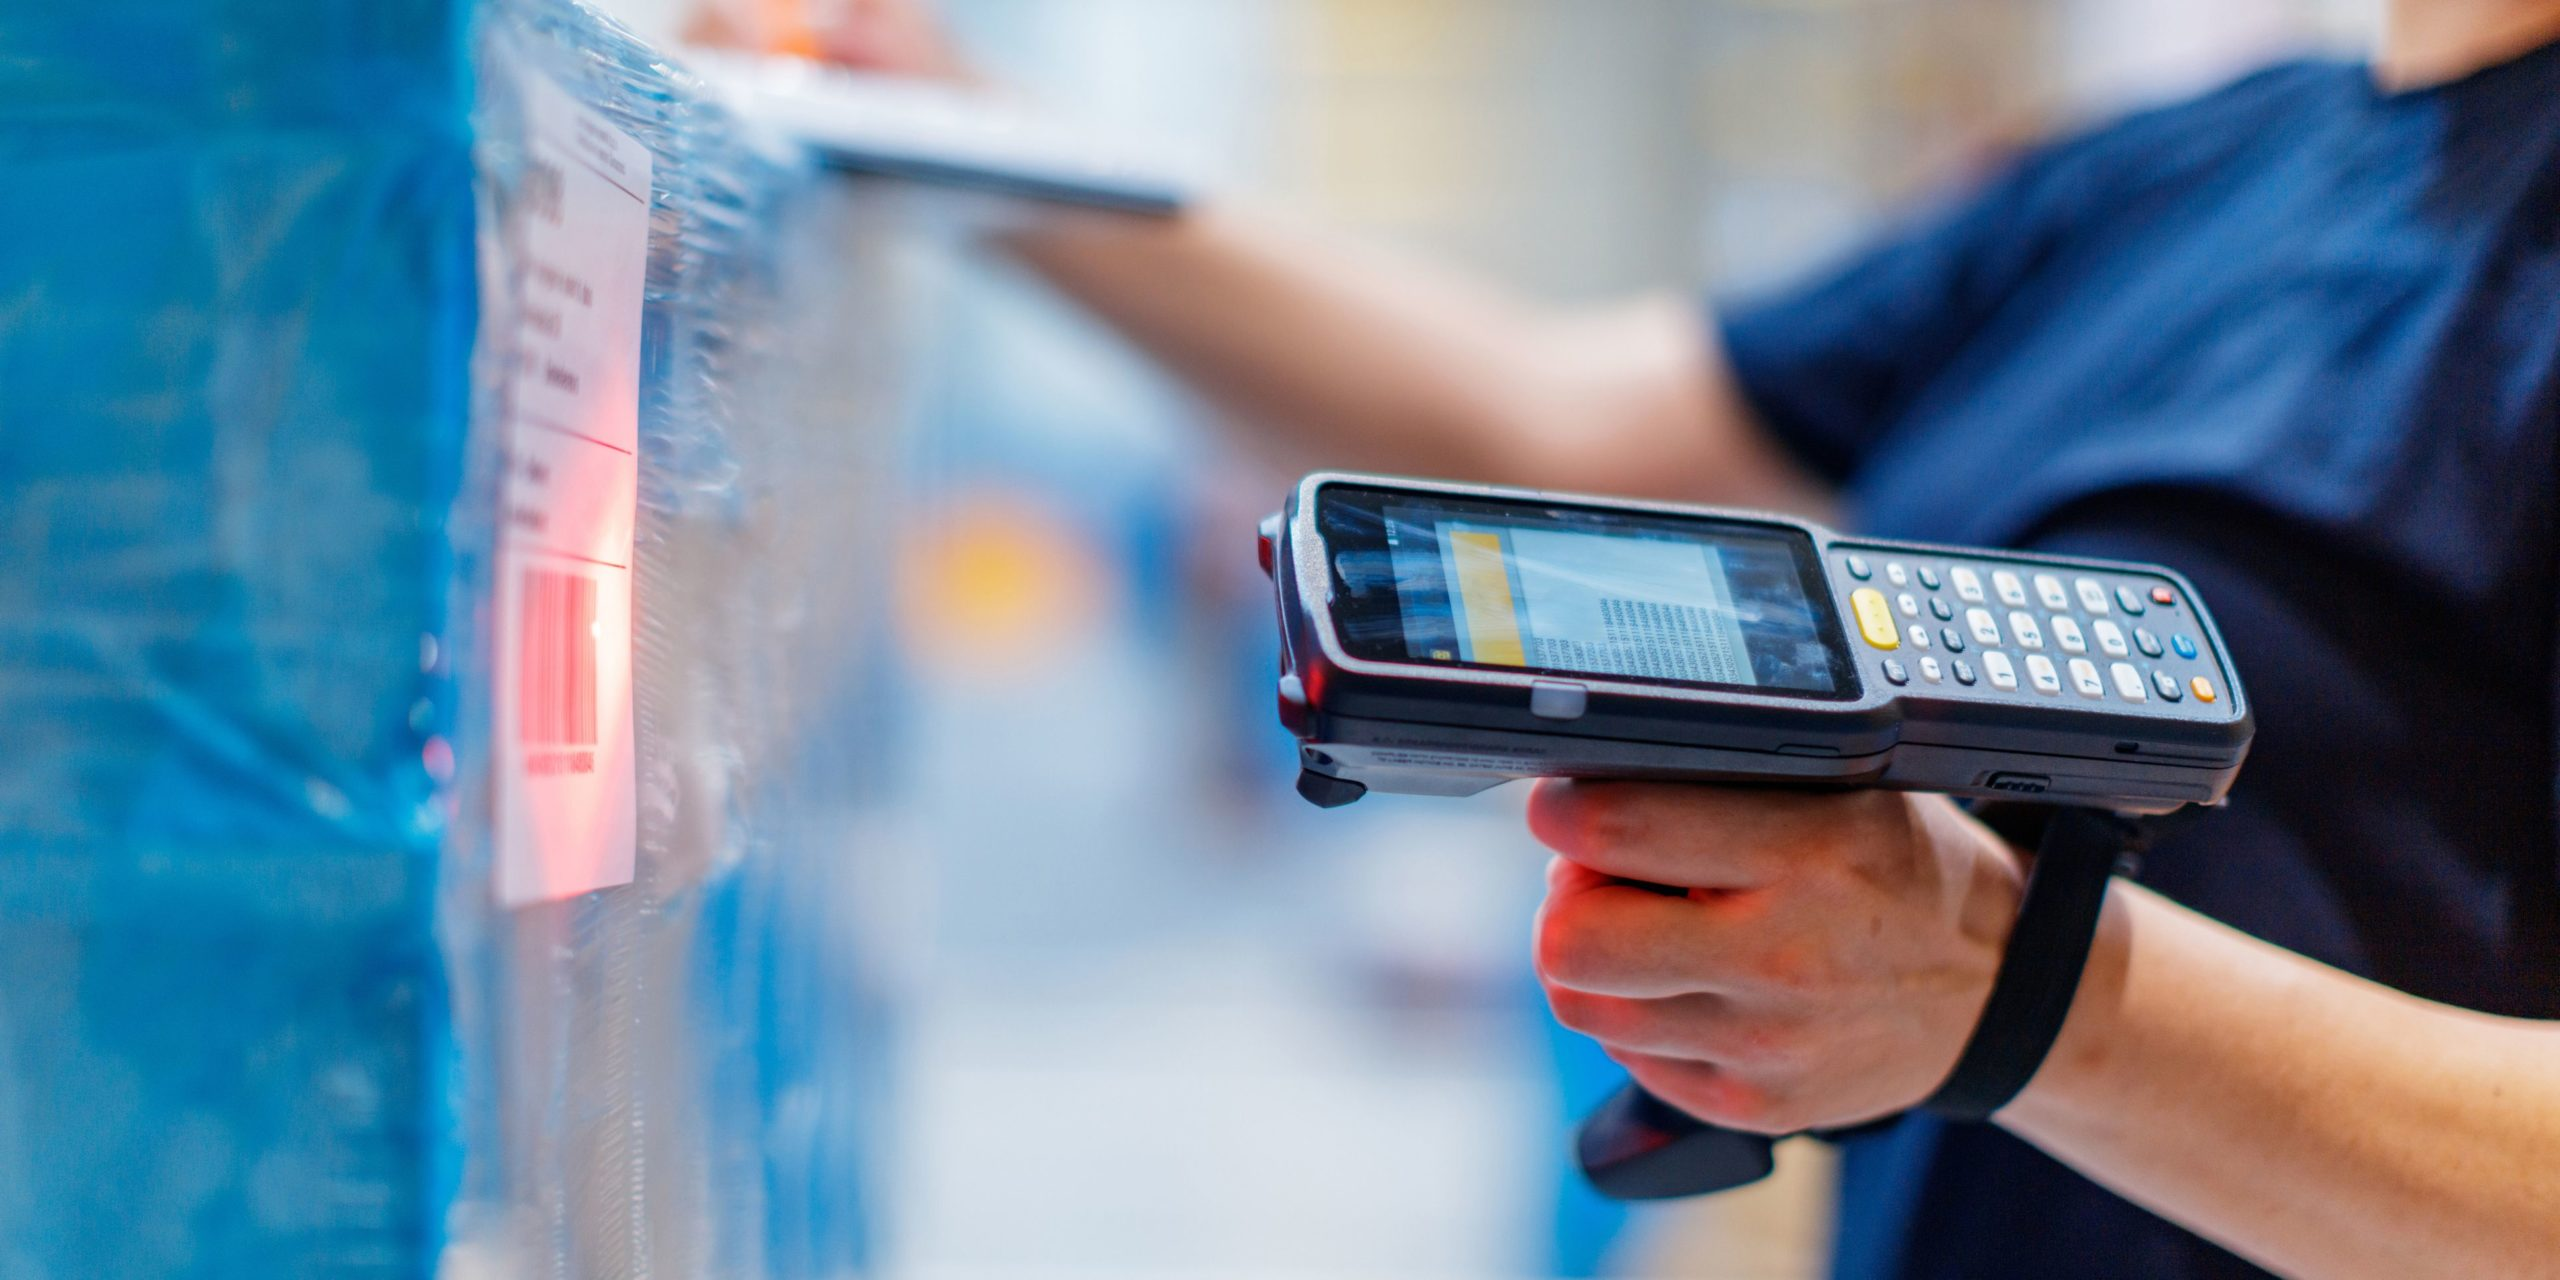 warehouse employee scanning incoming shipment with barcode scanner